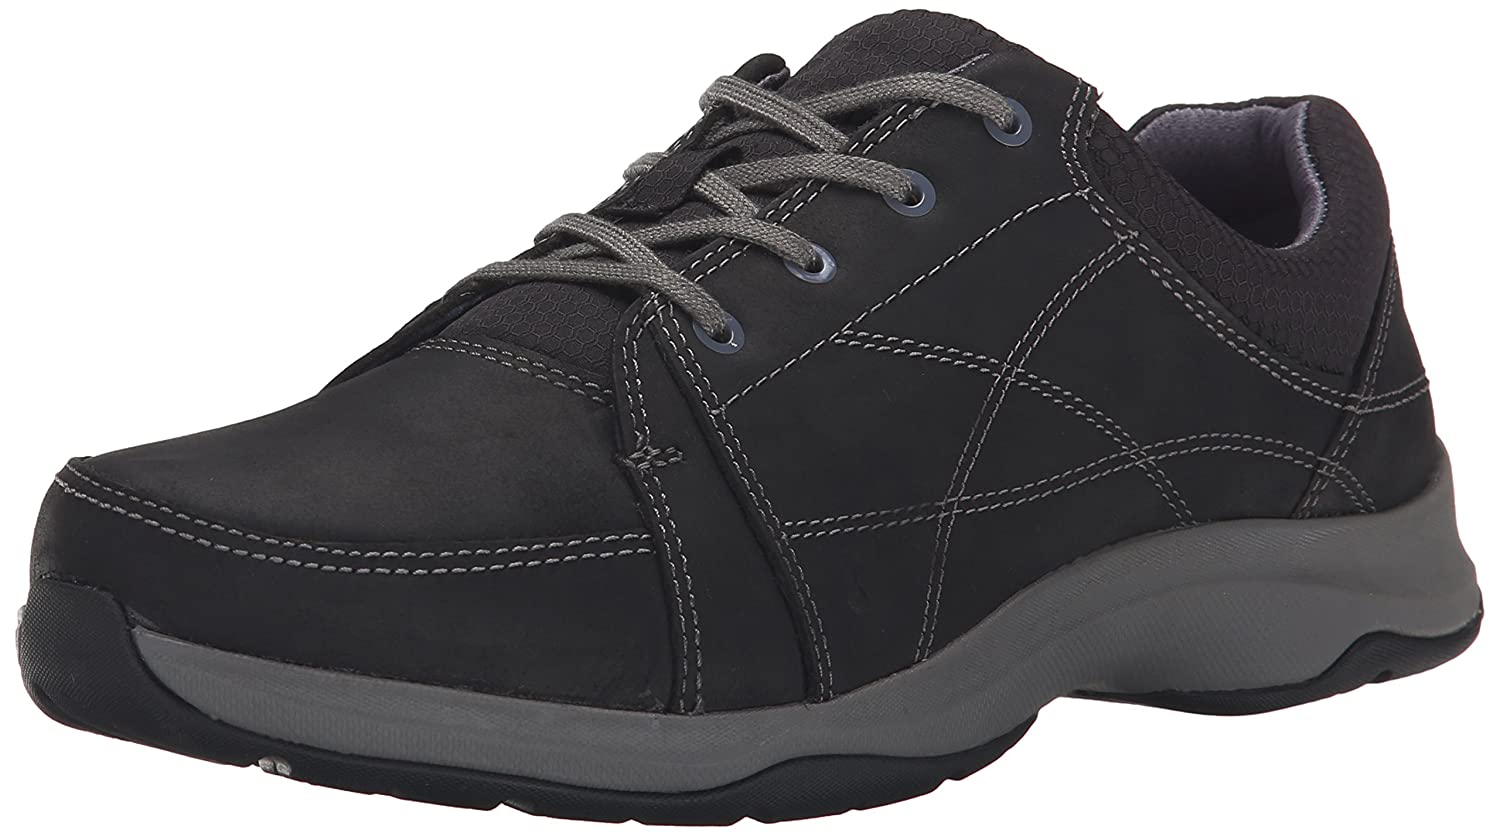 Ahnu Women's Taraval Walking Shoe B00RLDV1QG 11 B(M) US|Black